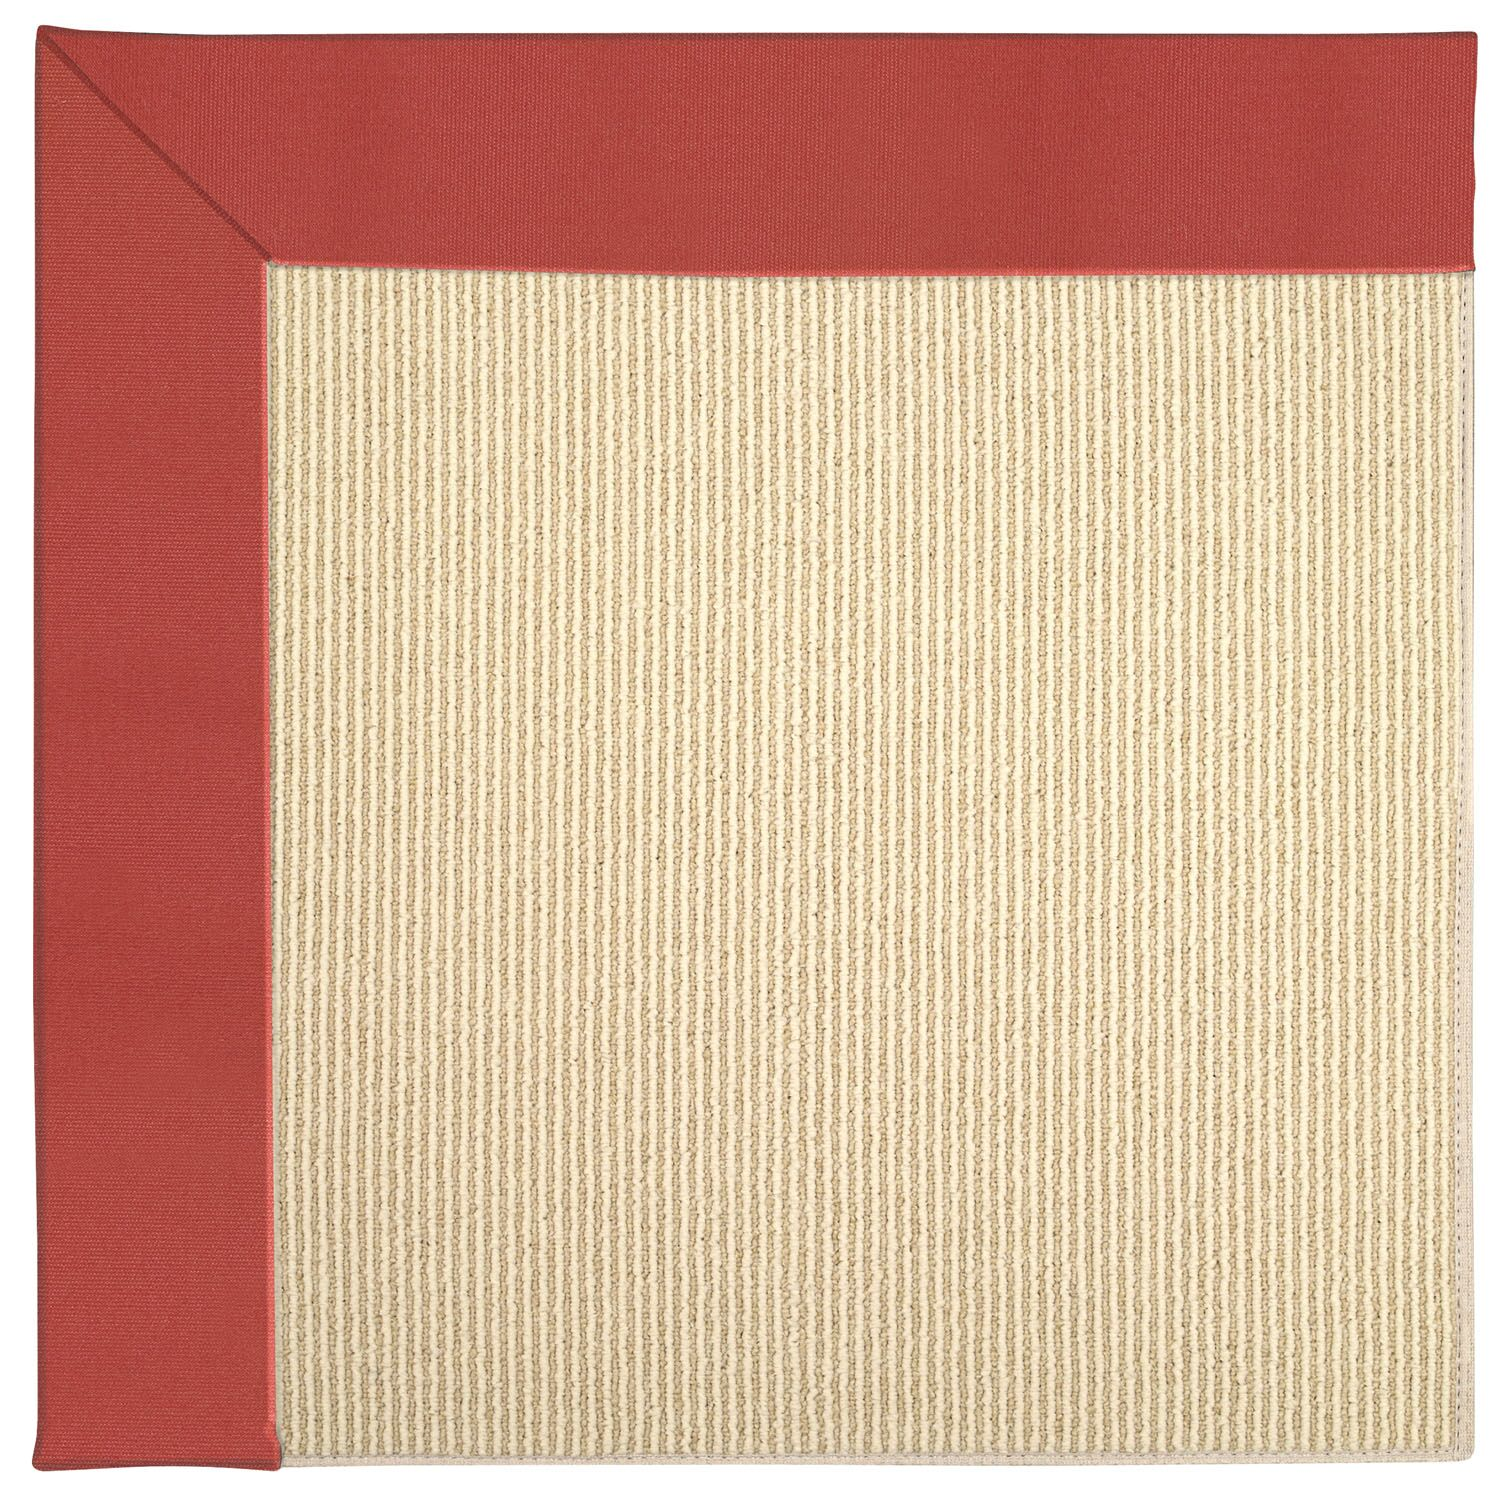 Lisle Machine Tufted Sunset Red/Beige Indoor/Outdoor Area Rug Rug Size: Square 10'